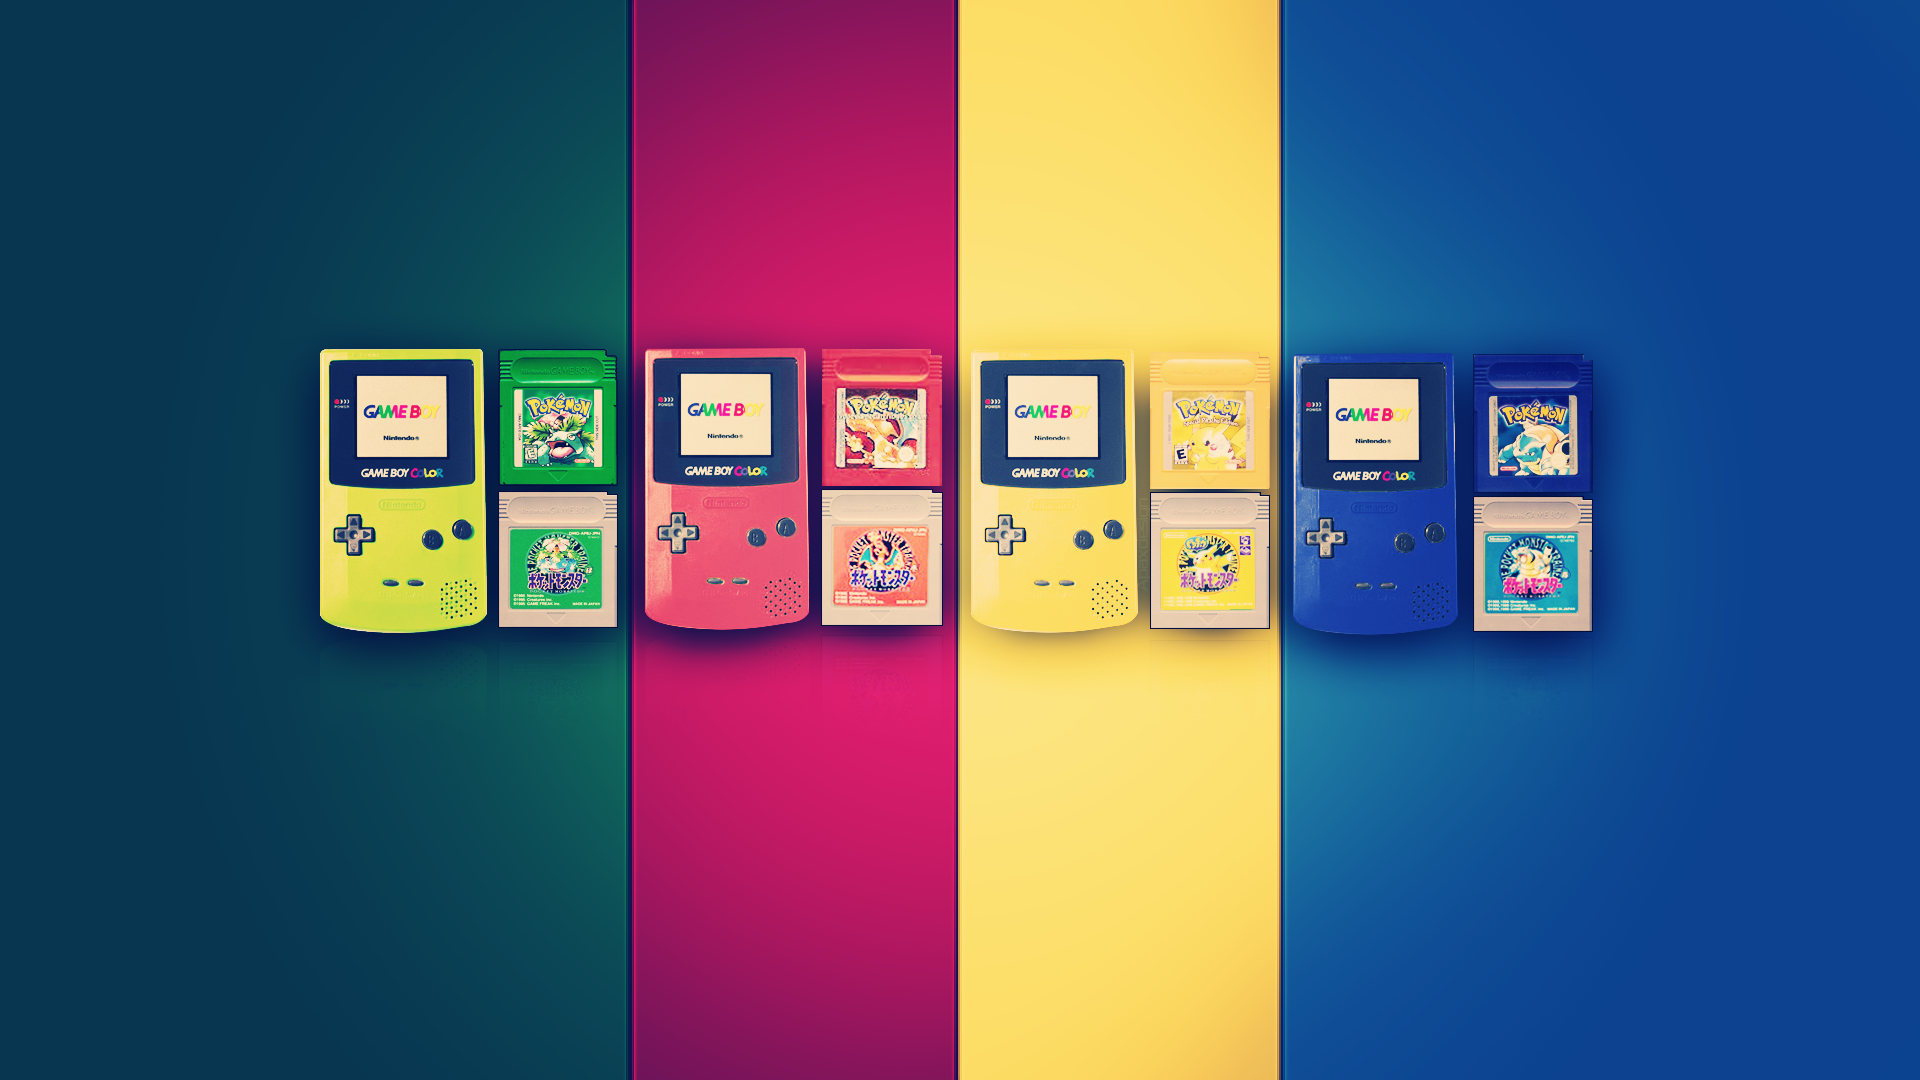 cool pokemon gameboy wallpaper 41885